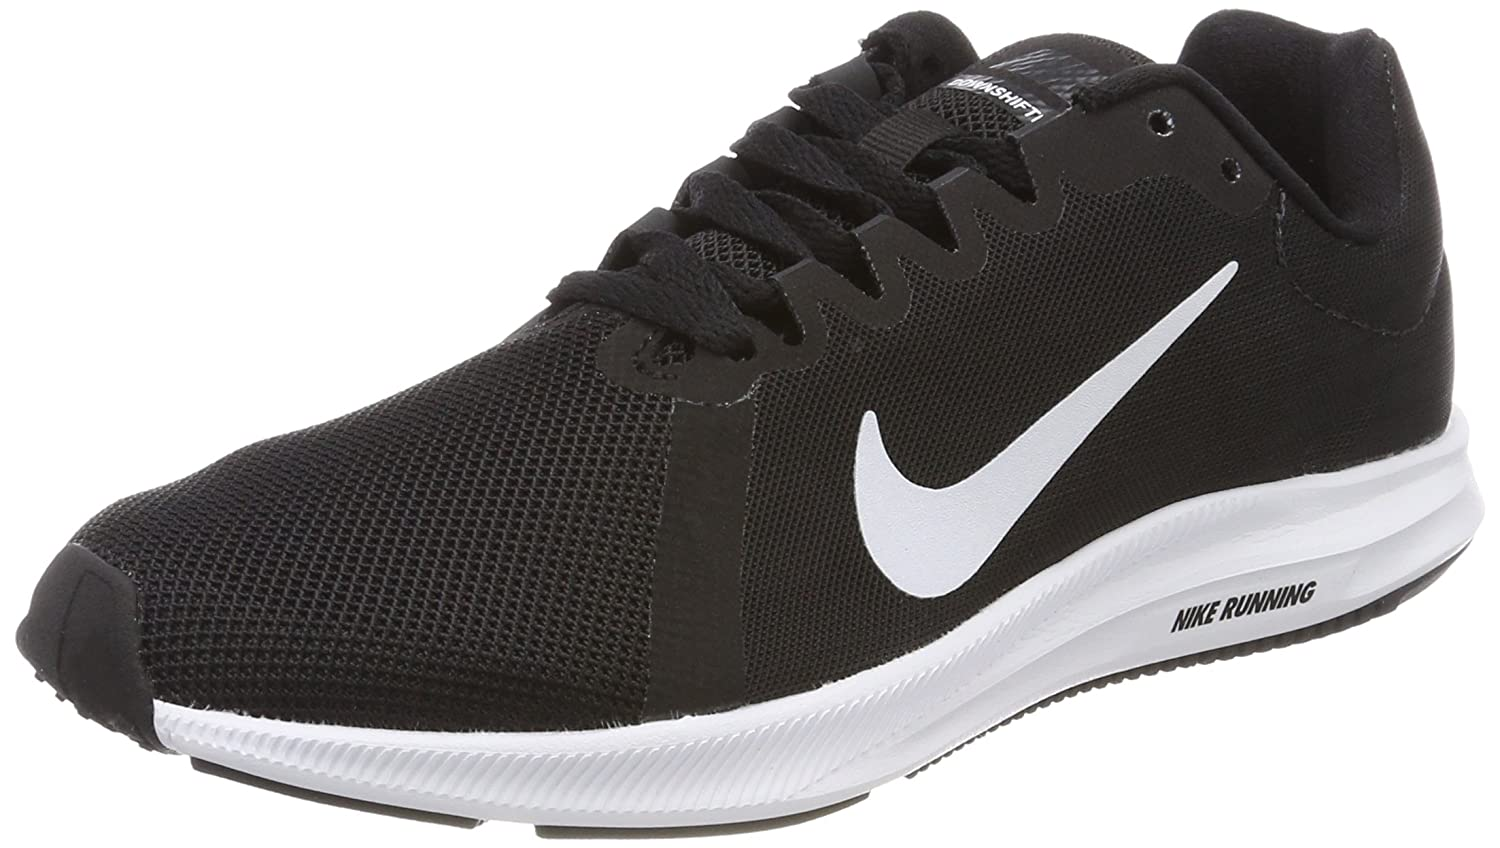 72694d3fdbb9d Nike Women s Downshifter 8 Competition Running Shoes  Amazon.co.uk  Shoes    Bags